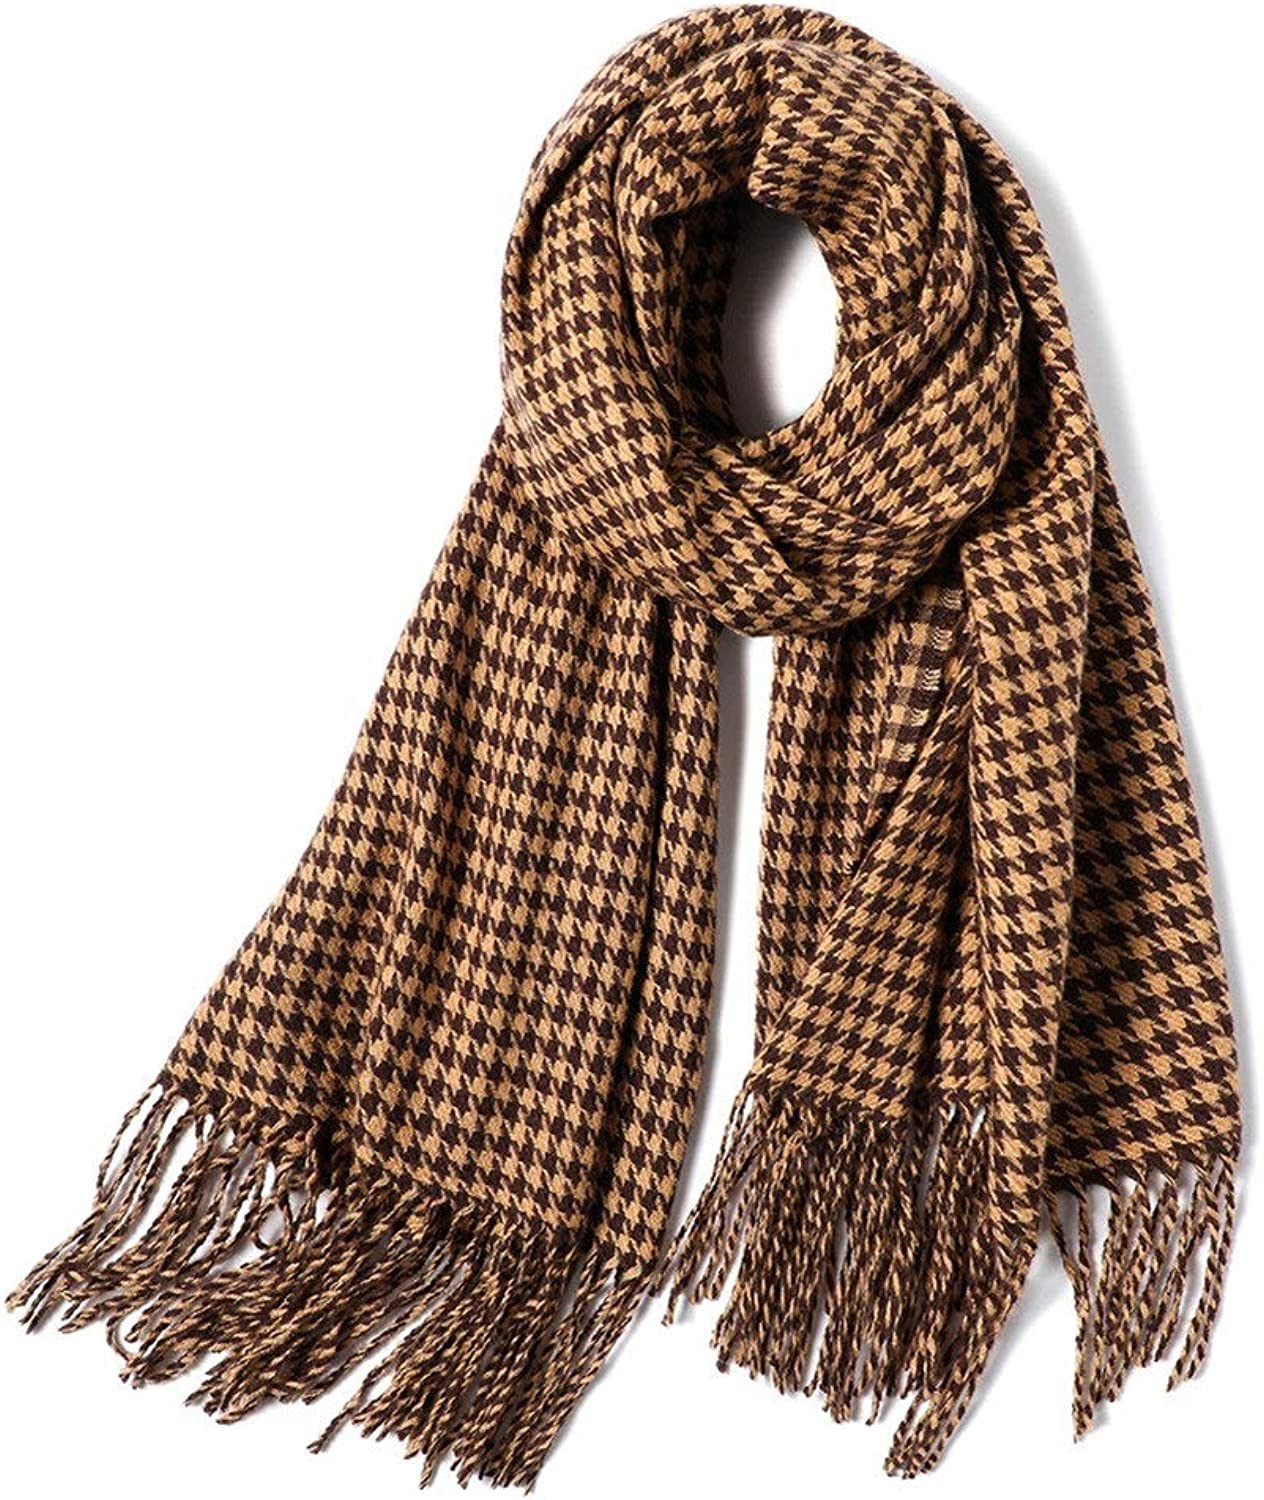 Ladies Houndstooth Scarf DoubleSided Warm Soft Scarf Shawl (color   Brown)